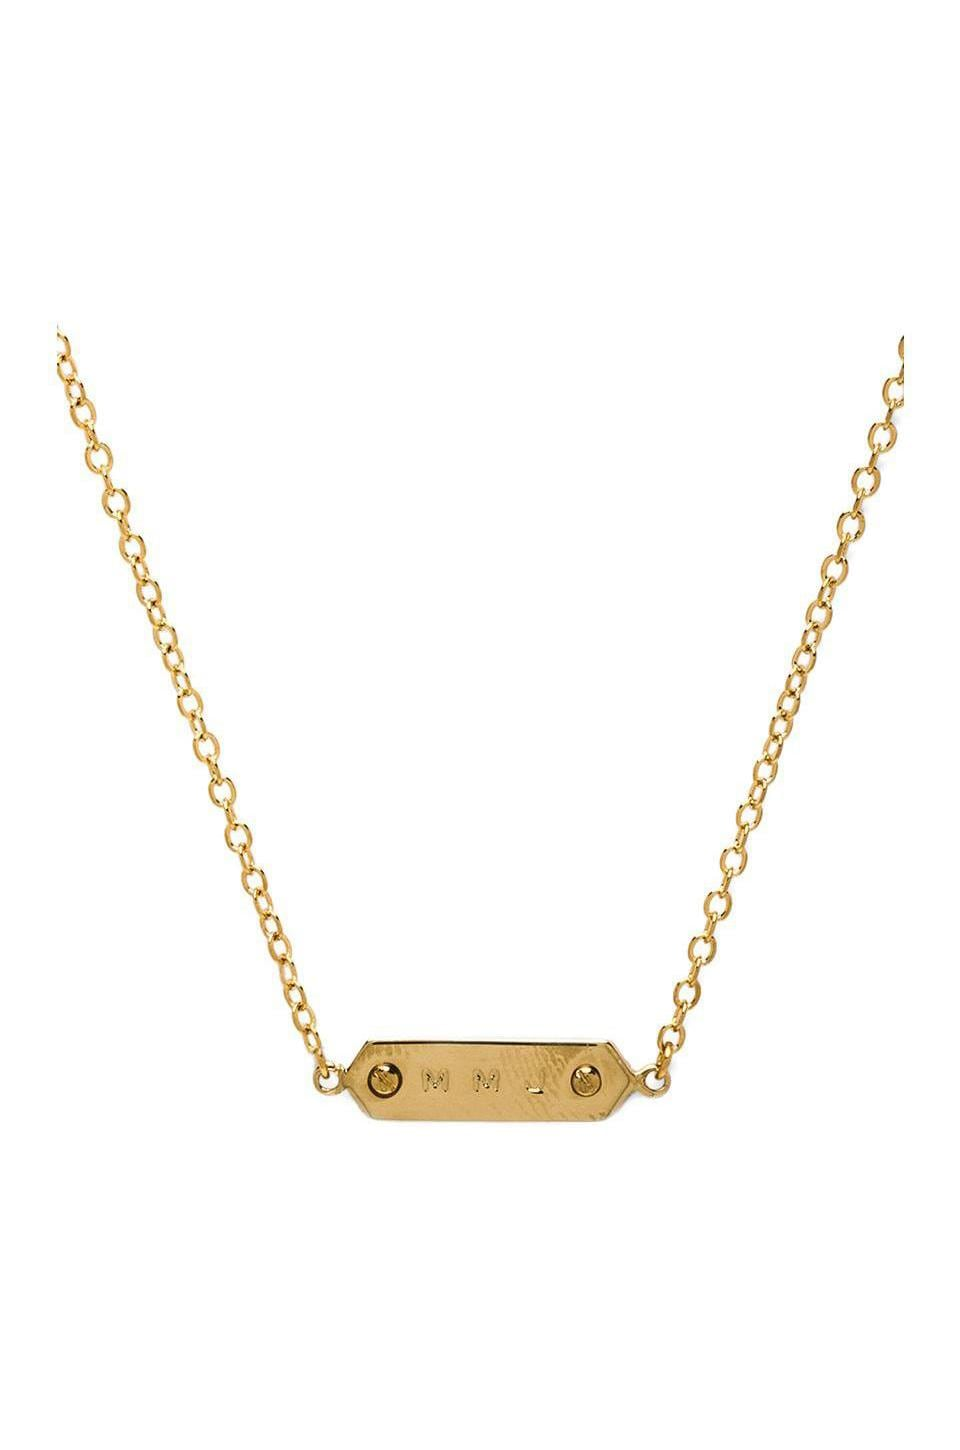 Marc by Marc Jacobs Grab & Go MMJ Plaque Necklace in Oro